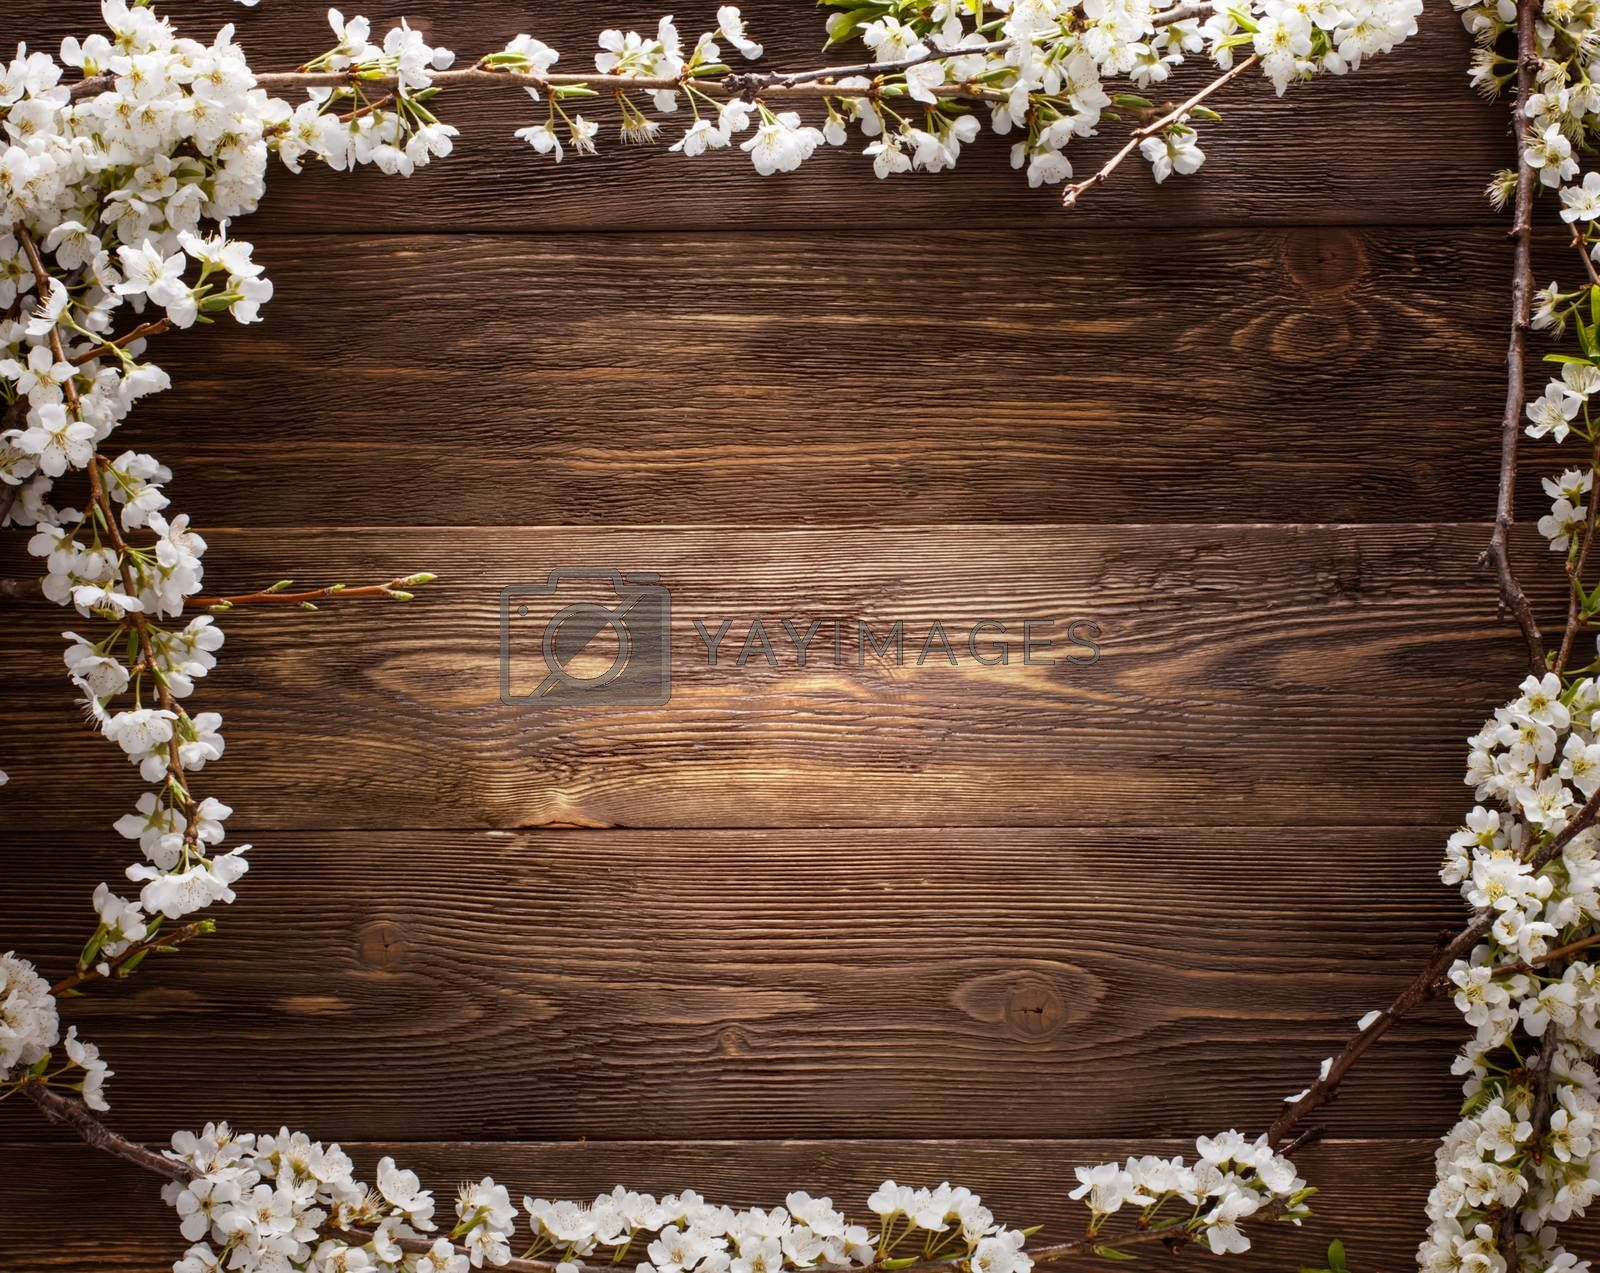 Royalty free image of Summer Flowers on wood texture background with copyspace by primopiano